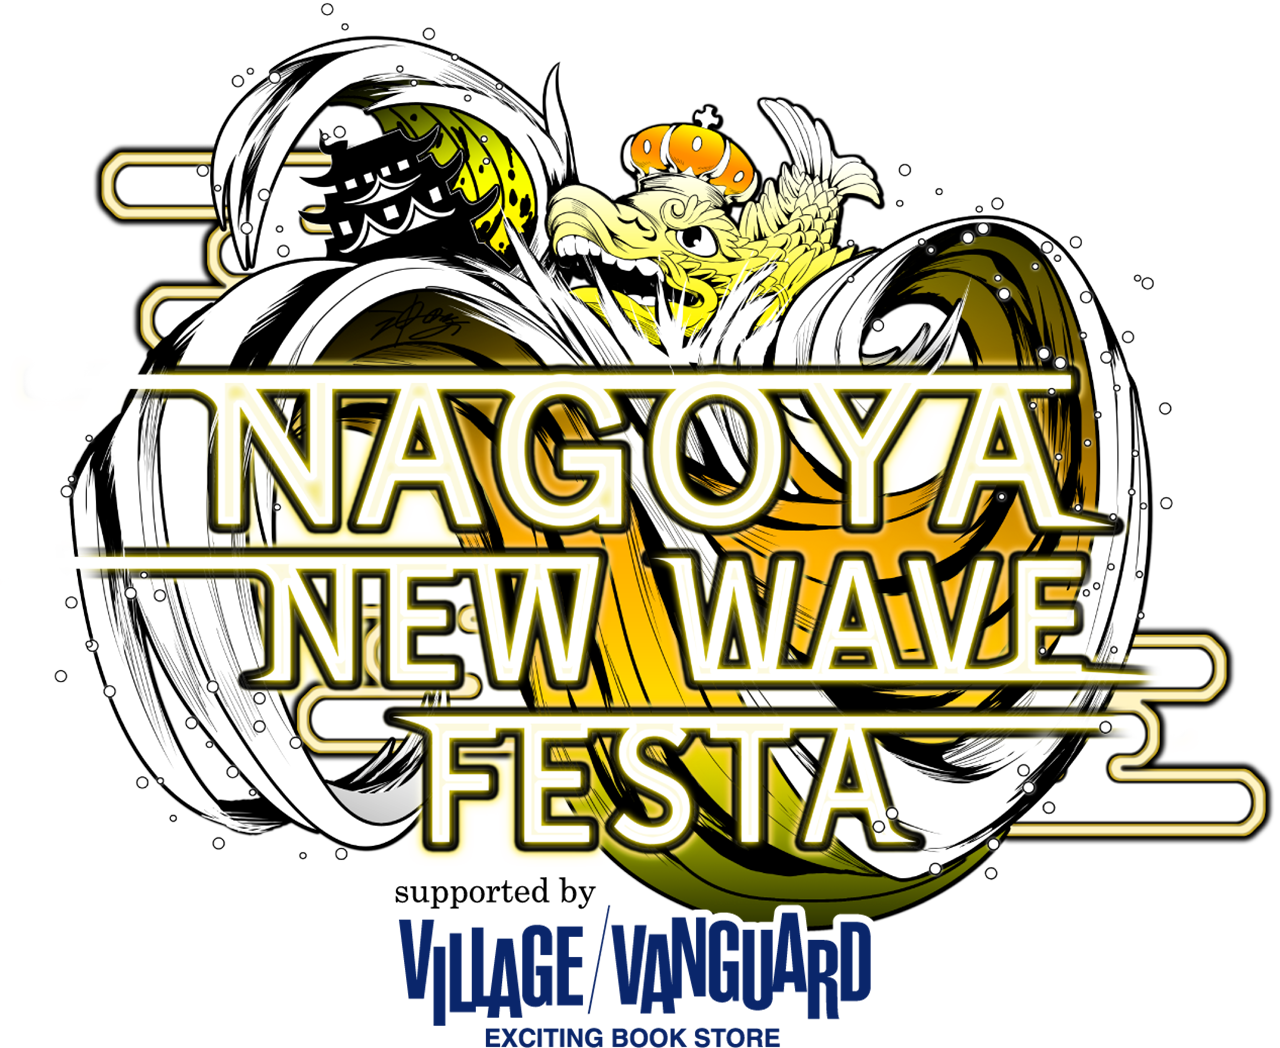 NAGOYA NEW WAVE FASTA